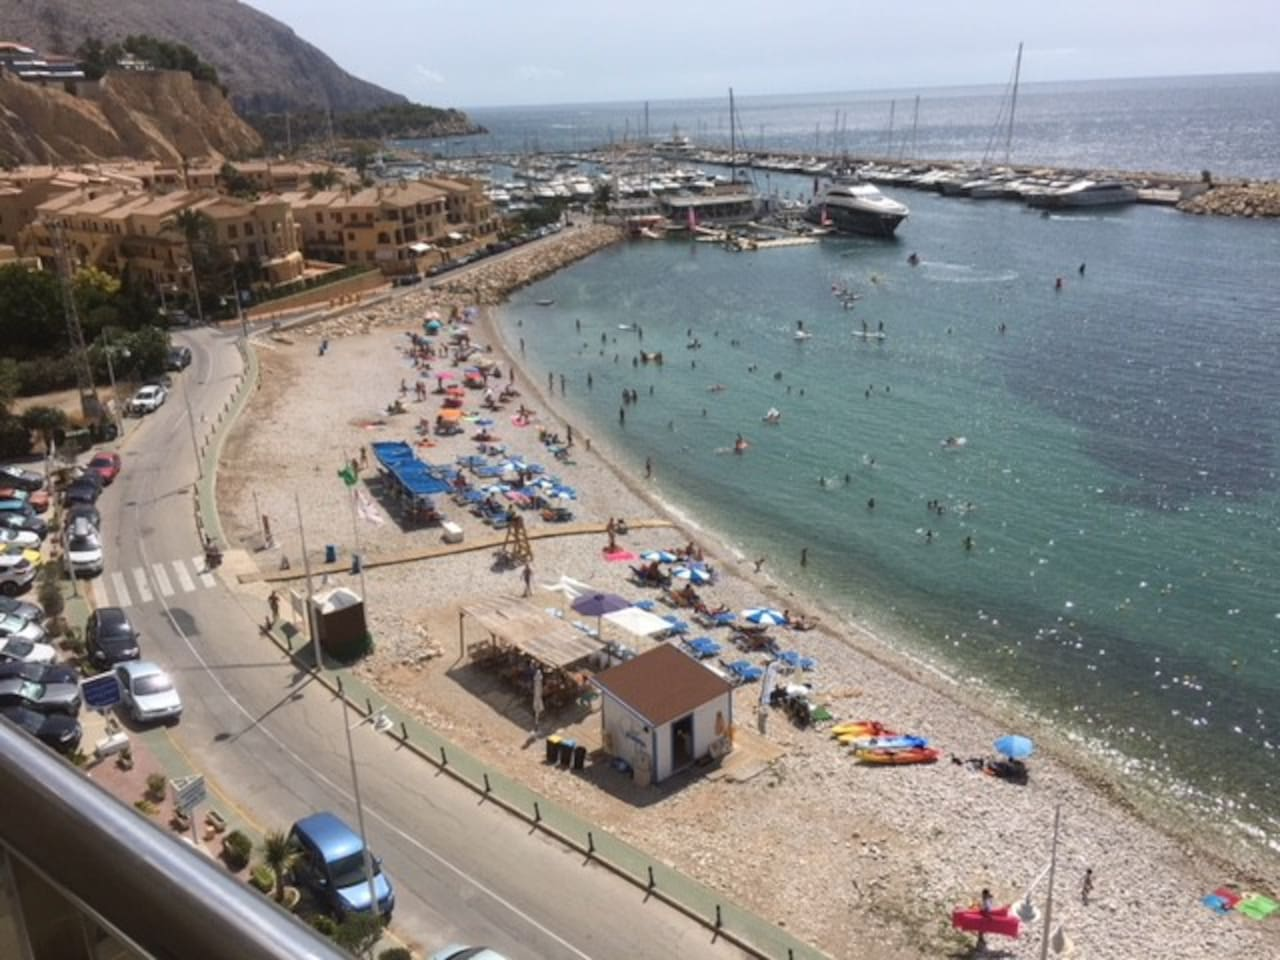 The fabulous balcony view of Mascarat beach and water sports, during the summer months.